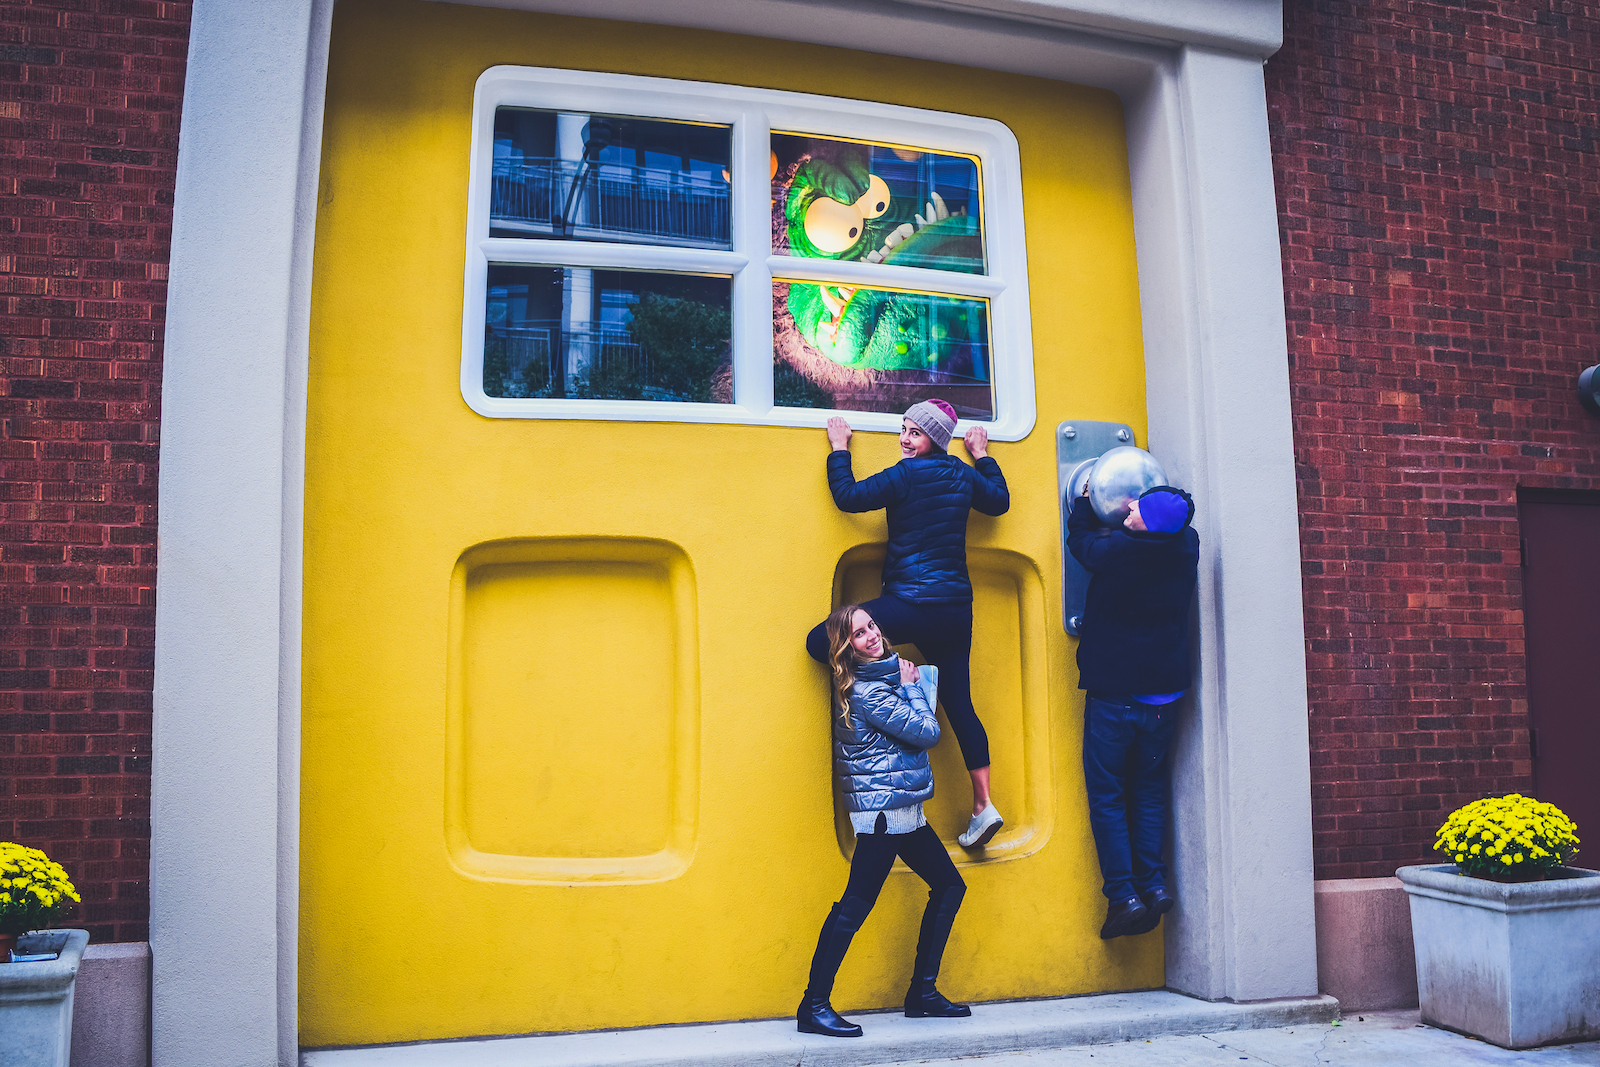 A First Timers Weekend City Guide to Chicago Big monster toys West Loop Toy store Travel guide to chicago illinois blog what to do what to see where to go 3 days-78